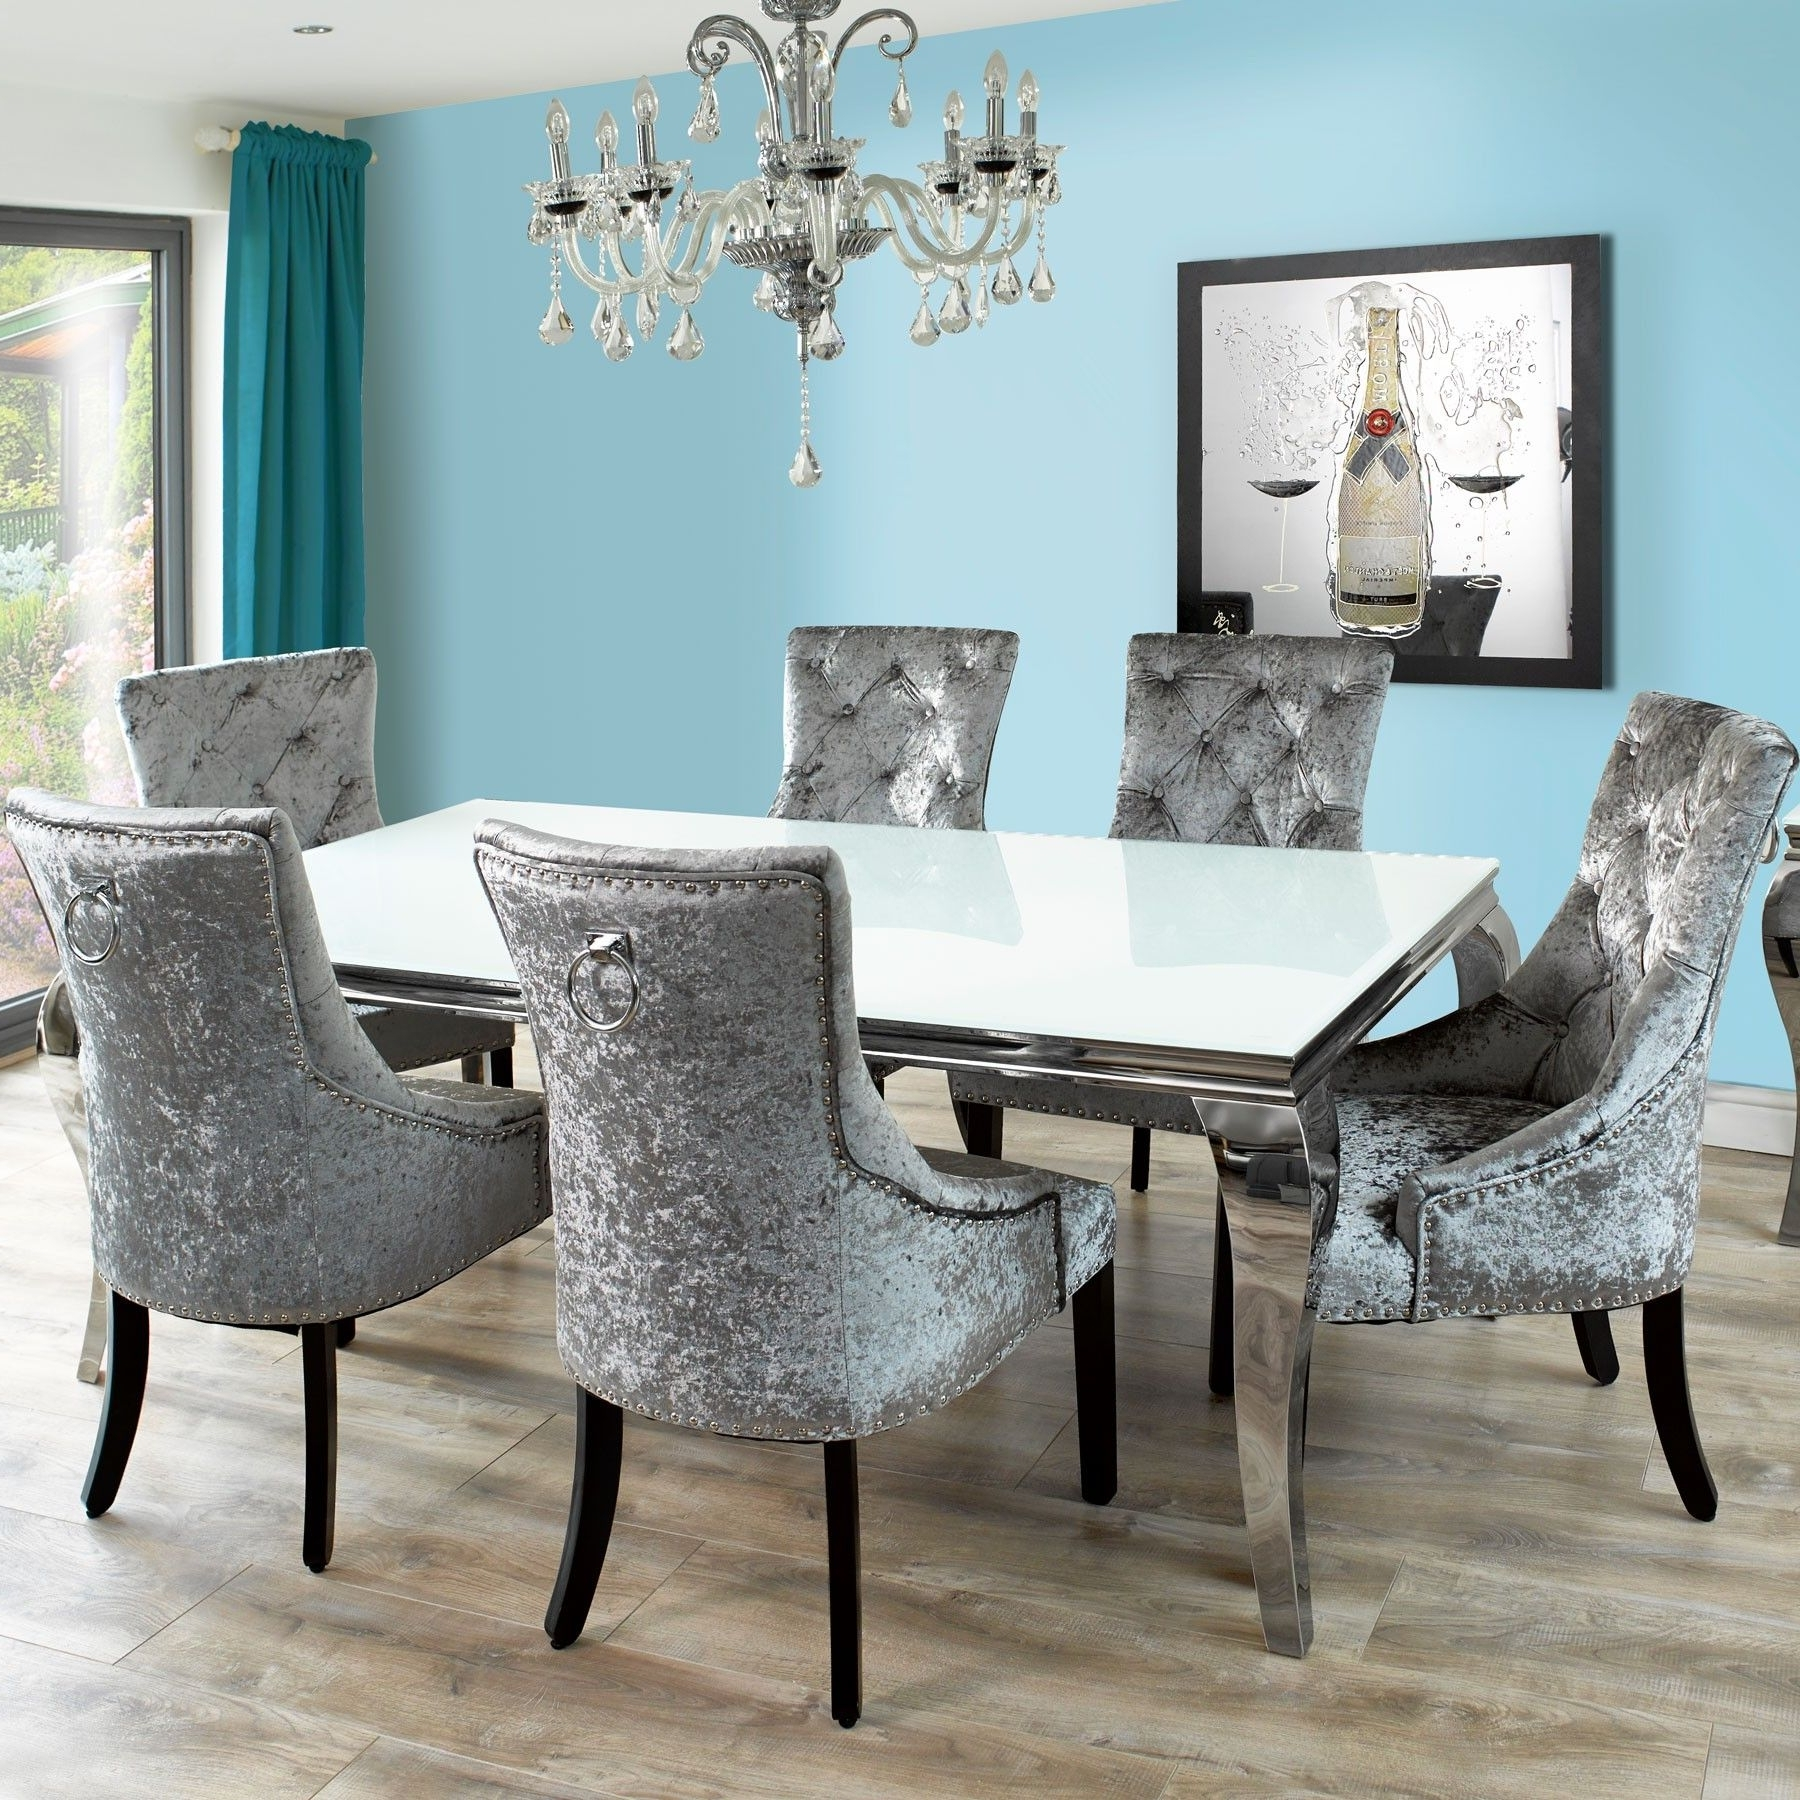 Newest Fadenza White Glass Dining Table And 6 Silver Chairs With Knocker Inside Glass Dining Tables And Chairs (View 18 of 25)